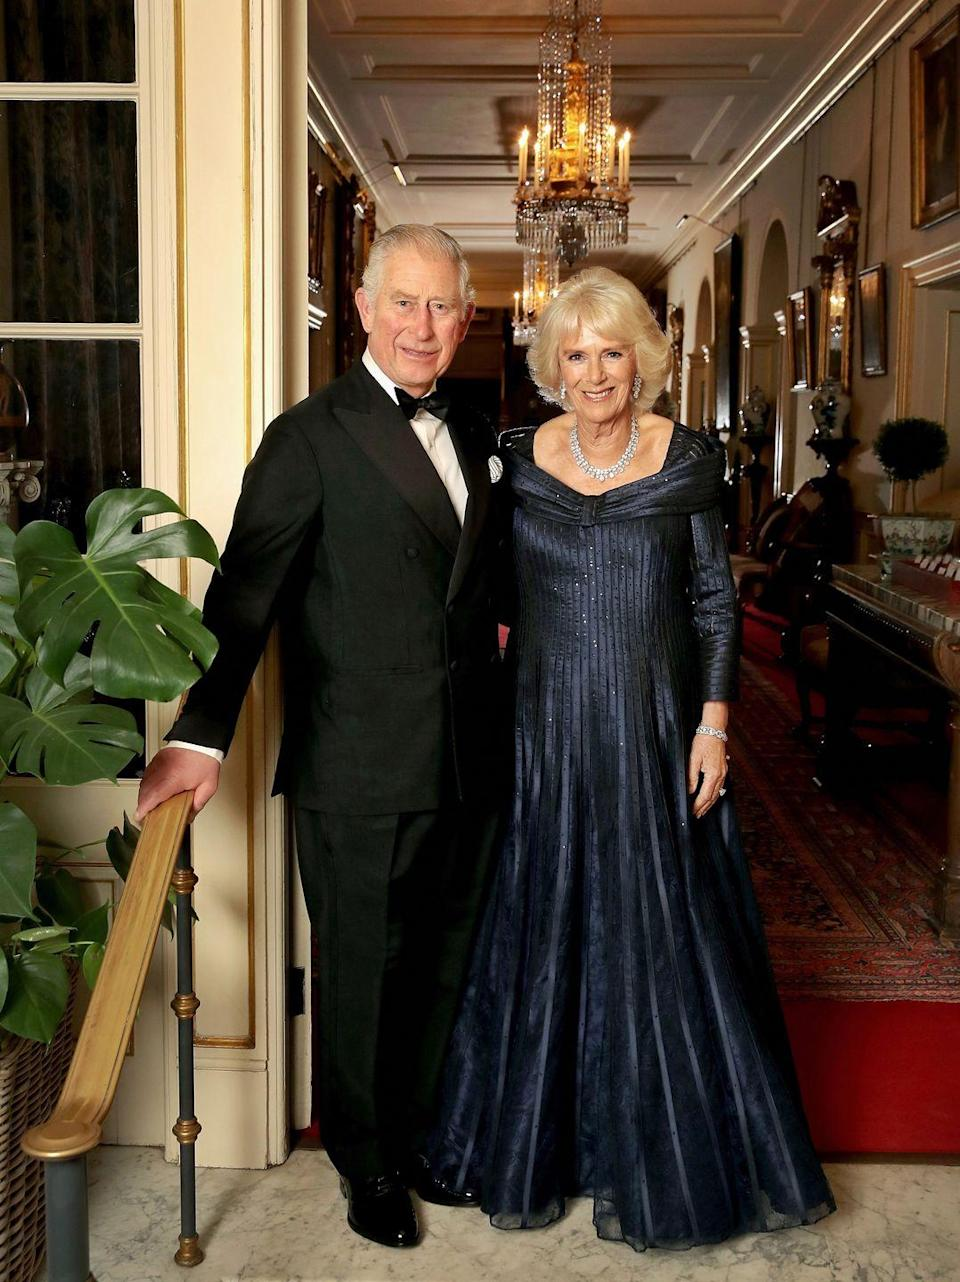 """<p>Clarence House released a new photo of Prince Charles and Camilla <a href=""""https://www.townandcountrymag.com/society/tradition/g25058013/prince-charles-70th-birthday-party-photos/"""" rel=""""nofollow noopener"""" target=""""_blank"""" data-ylk=""""slk:at the prince's 70th birthday celebration"""" class=""""link rapid-noclick-resp"""">at the prince's 70th birthday celebration</a>, which was held at Buckingham Palace. The Duchess of Cornwall is wearing a navy gown by Bruce Oldfield.</p>"""